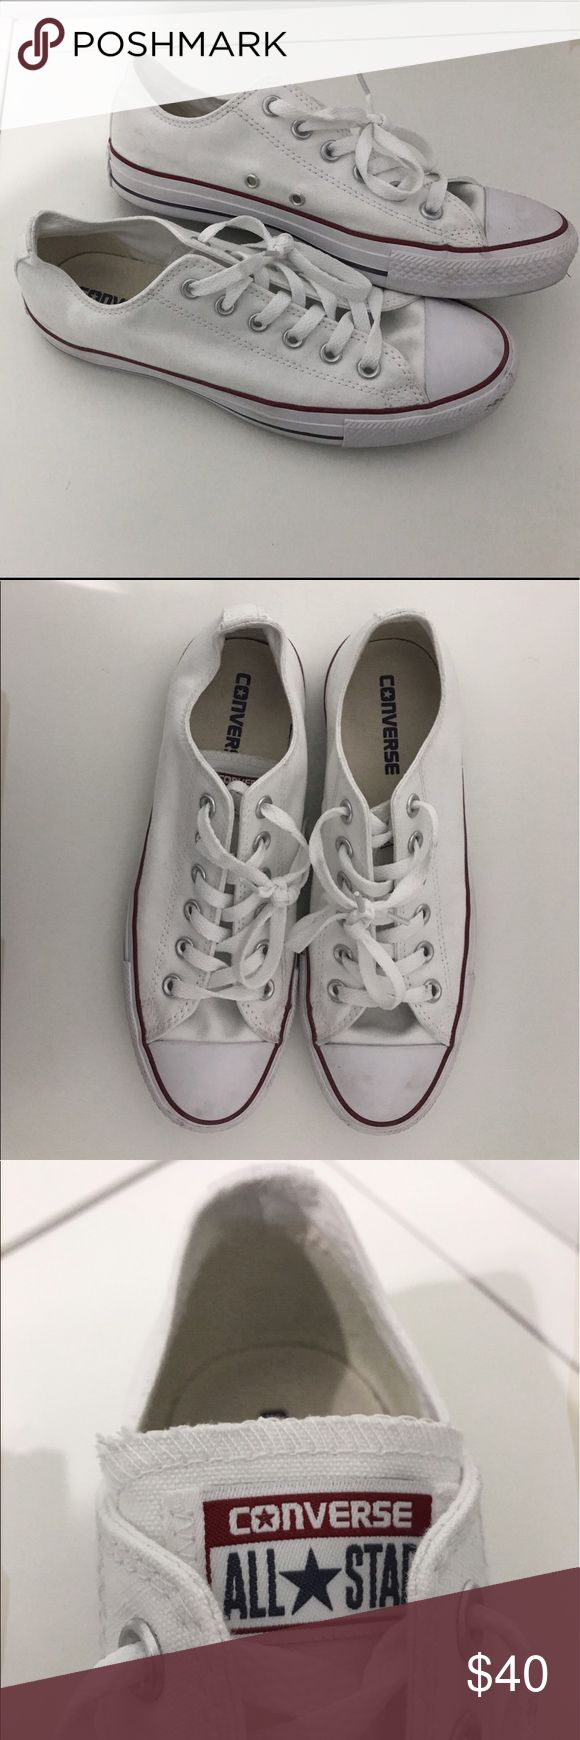 white low top converse authentic white low top converse in women's size 8.5. worn once, price is negotiable. Converse Shoes Sneakers